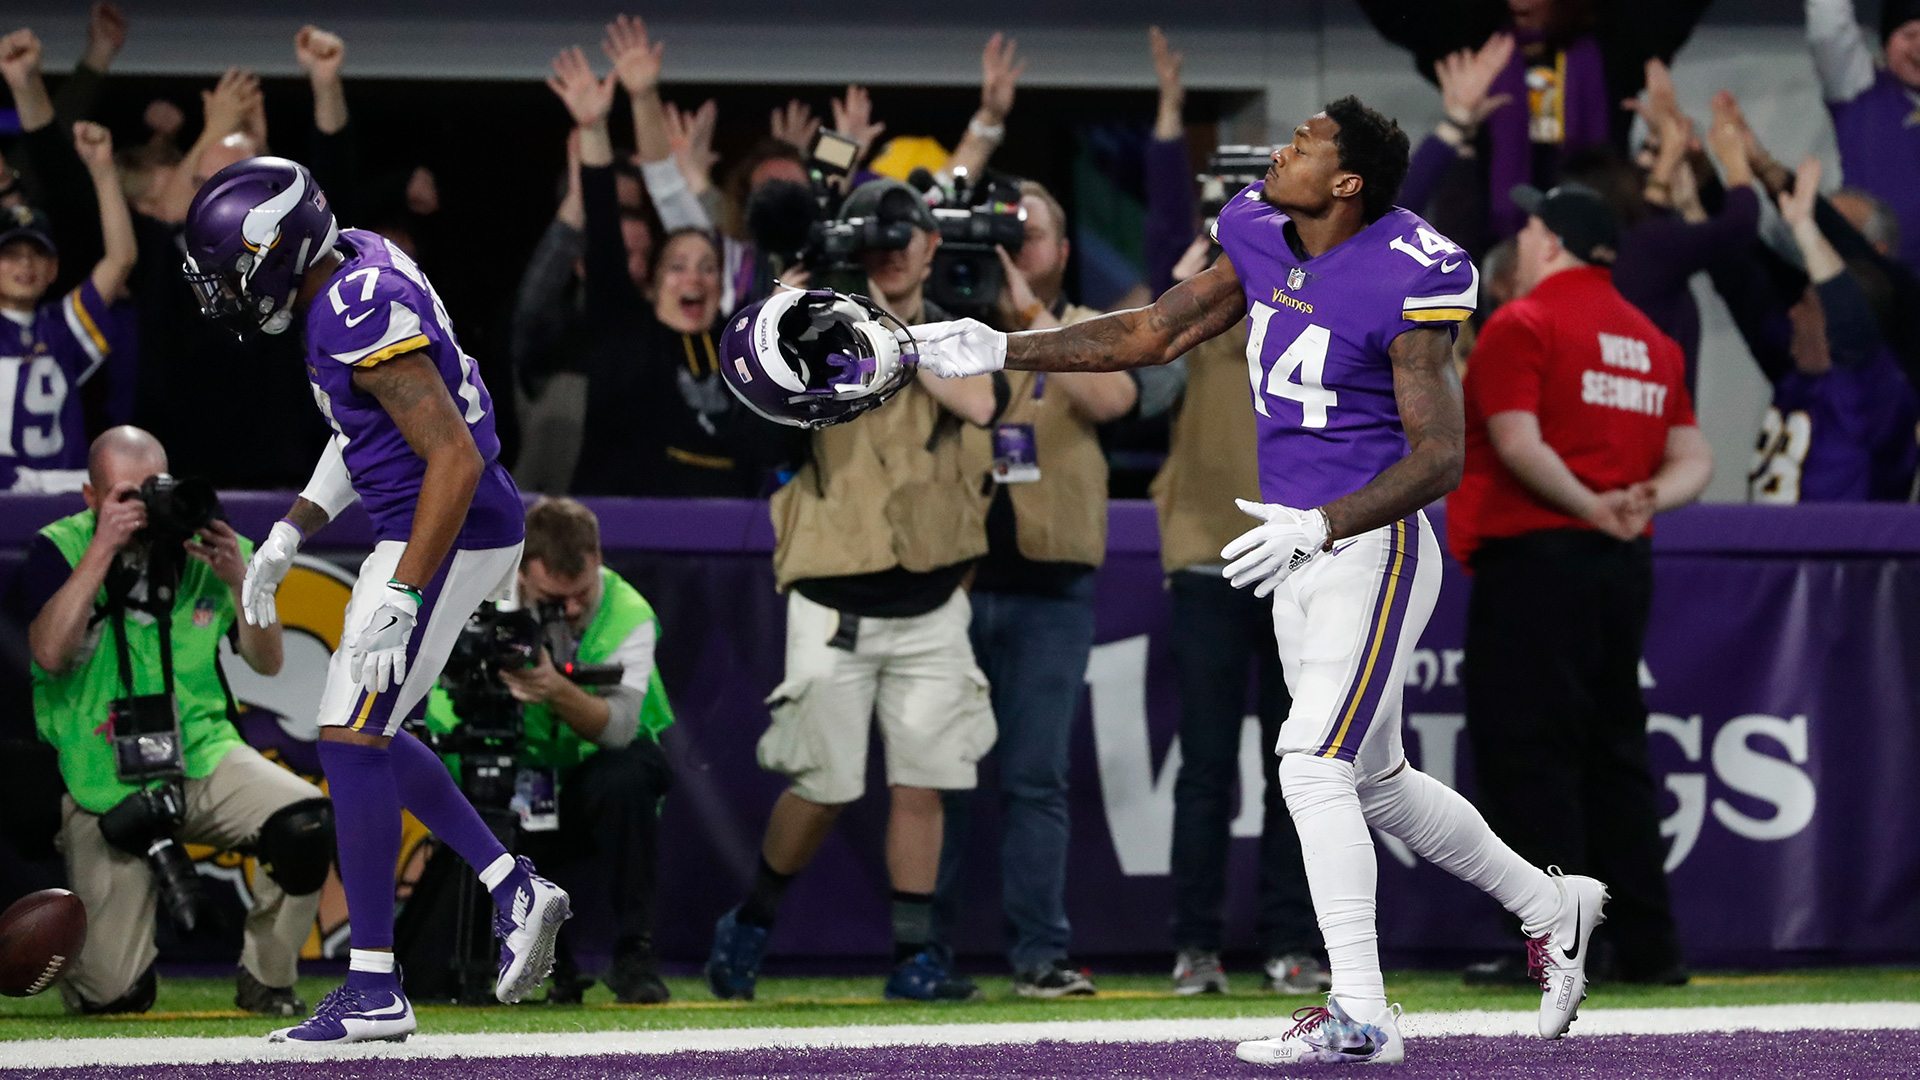 Minnesota Vikings wide receiver Stefon Diggs (14) celebrates in the end zone after a game winning touchdown against the New Orleans Saints during the second half of an NFL divisional football playoff game in Minneapolis, Sunday, Jan. 14, 2018. The Vikings defeated the Saints 29-24. (AP Photo/Jeff Roberson)